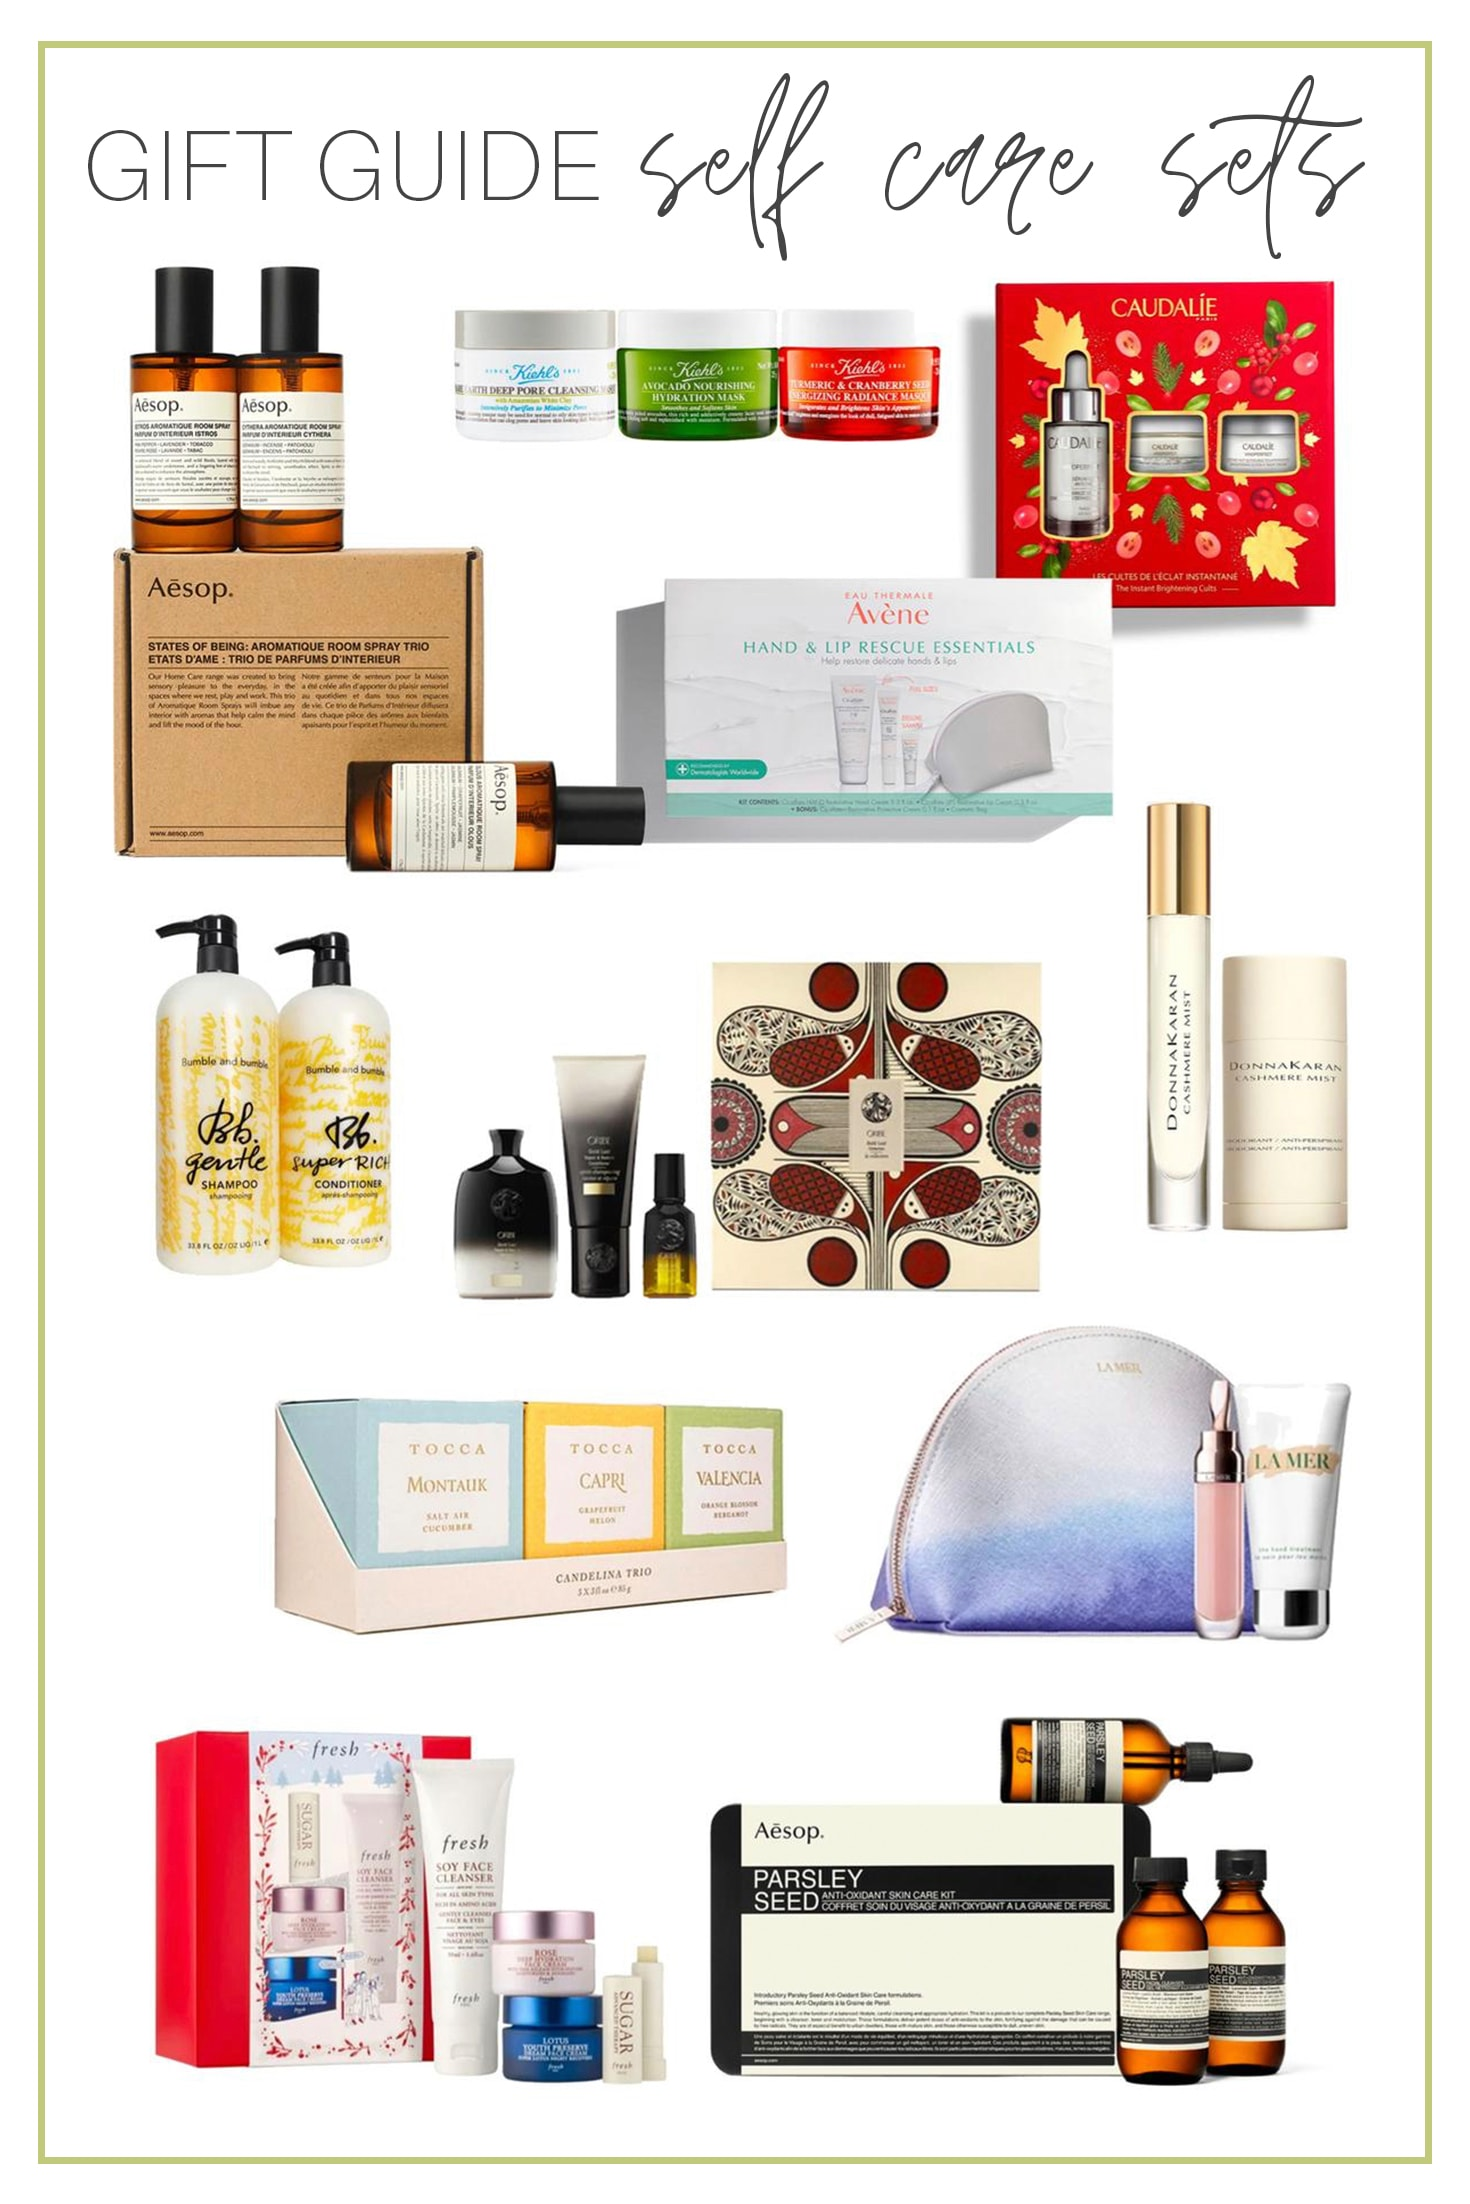 Gift Guide self care sets